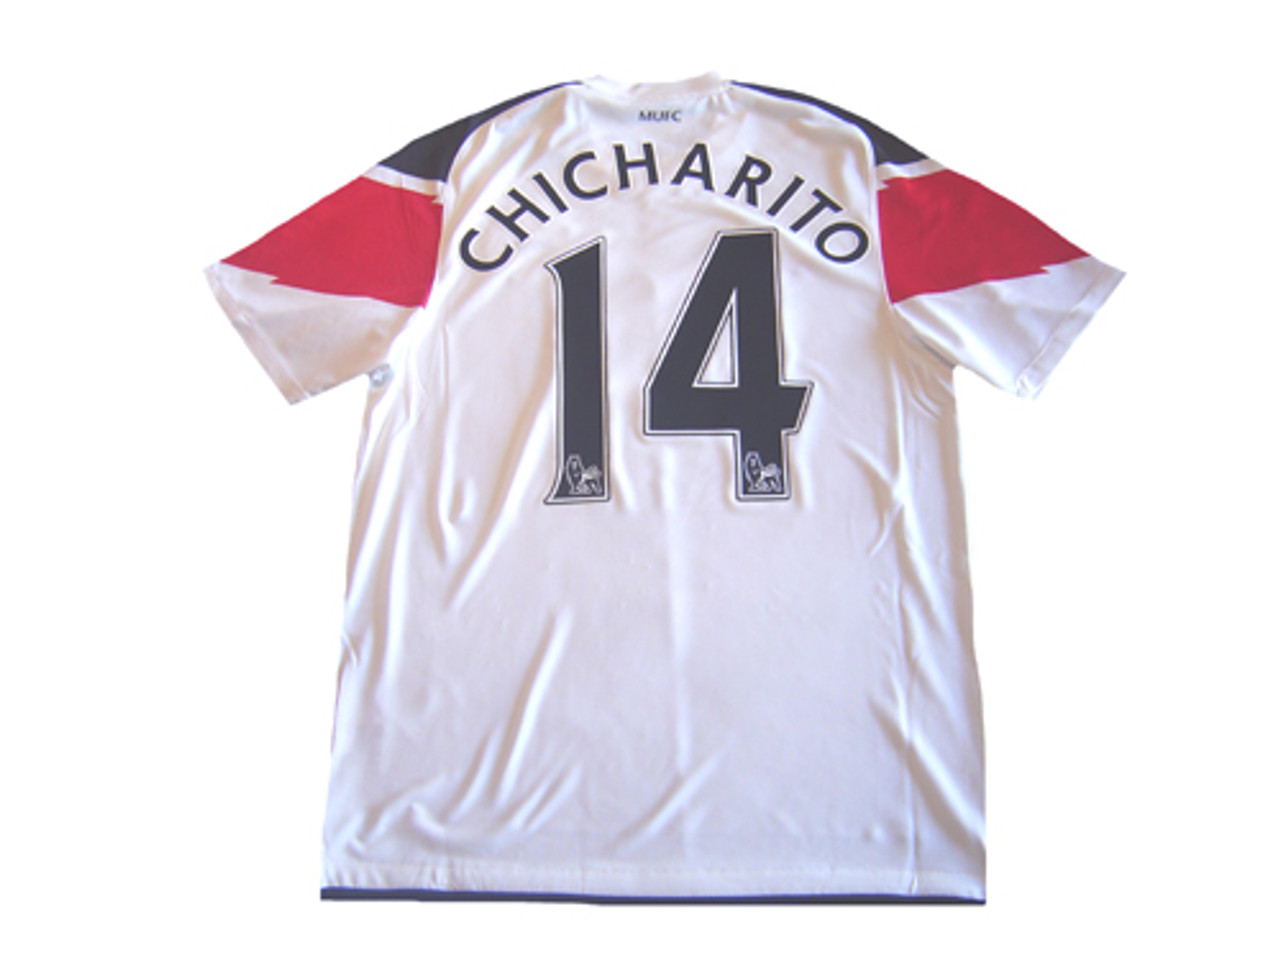 reputable site 92c20 a9964 NIKE MANCHESTER UNITED 2011 AWAY `CHICHARITO` JERSEY WHITE